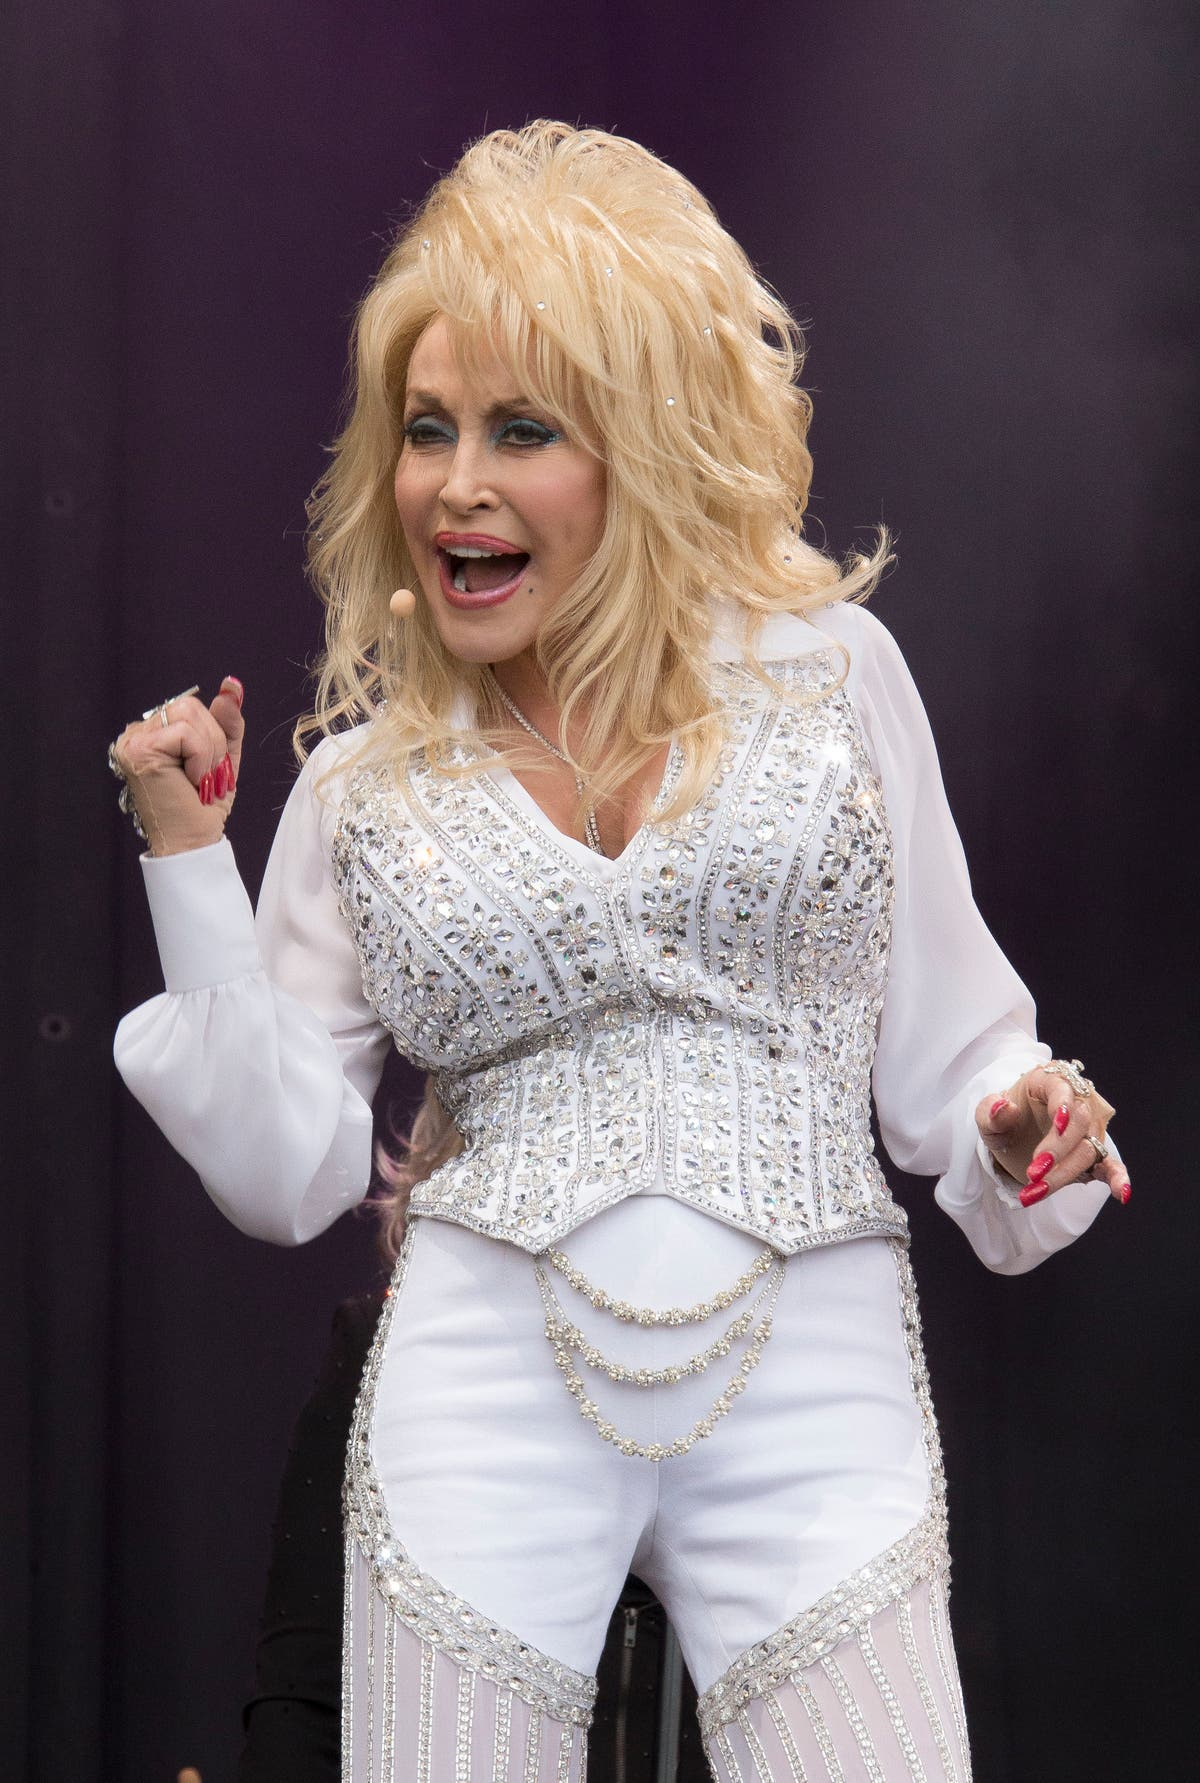 Dolly Parton - who helped fund vaccine - gets Covid shot in the arm